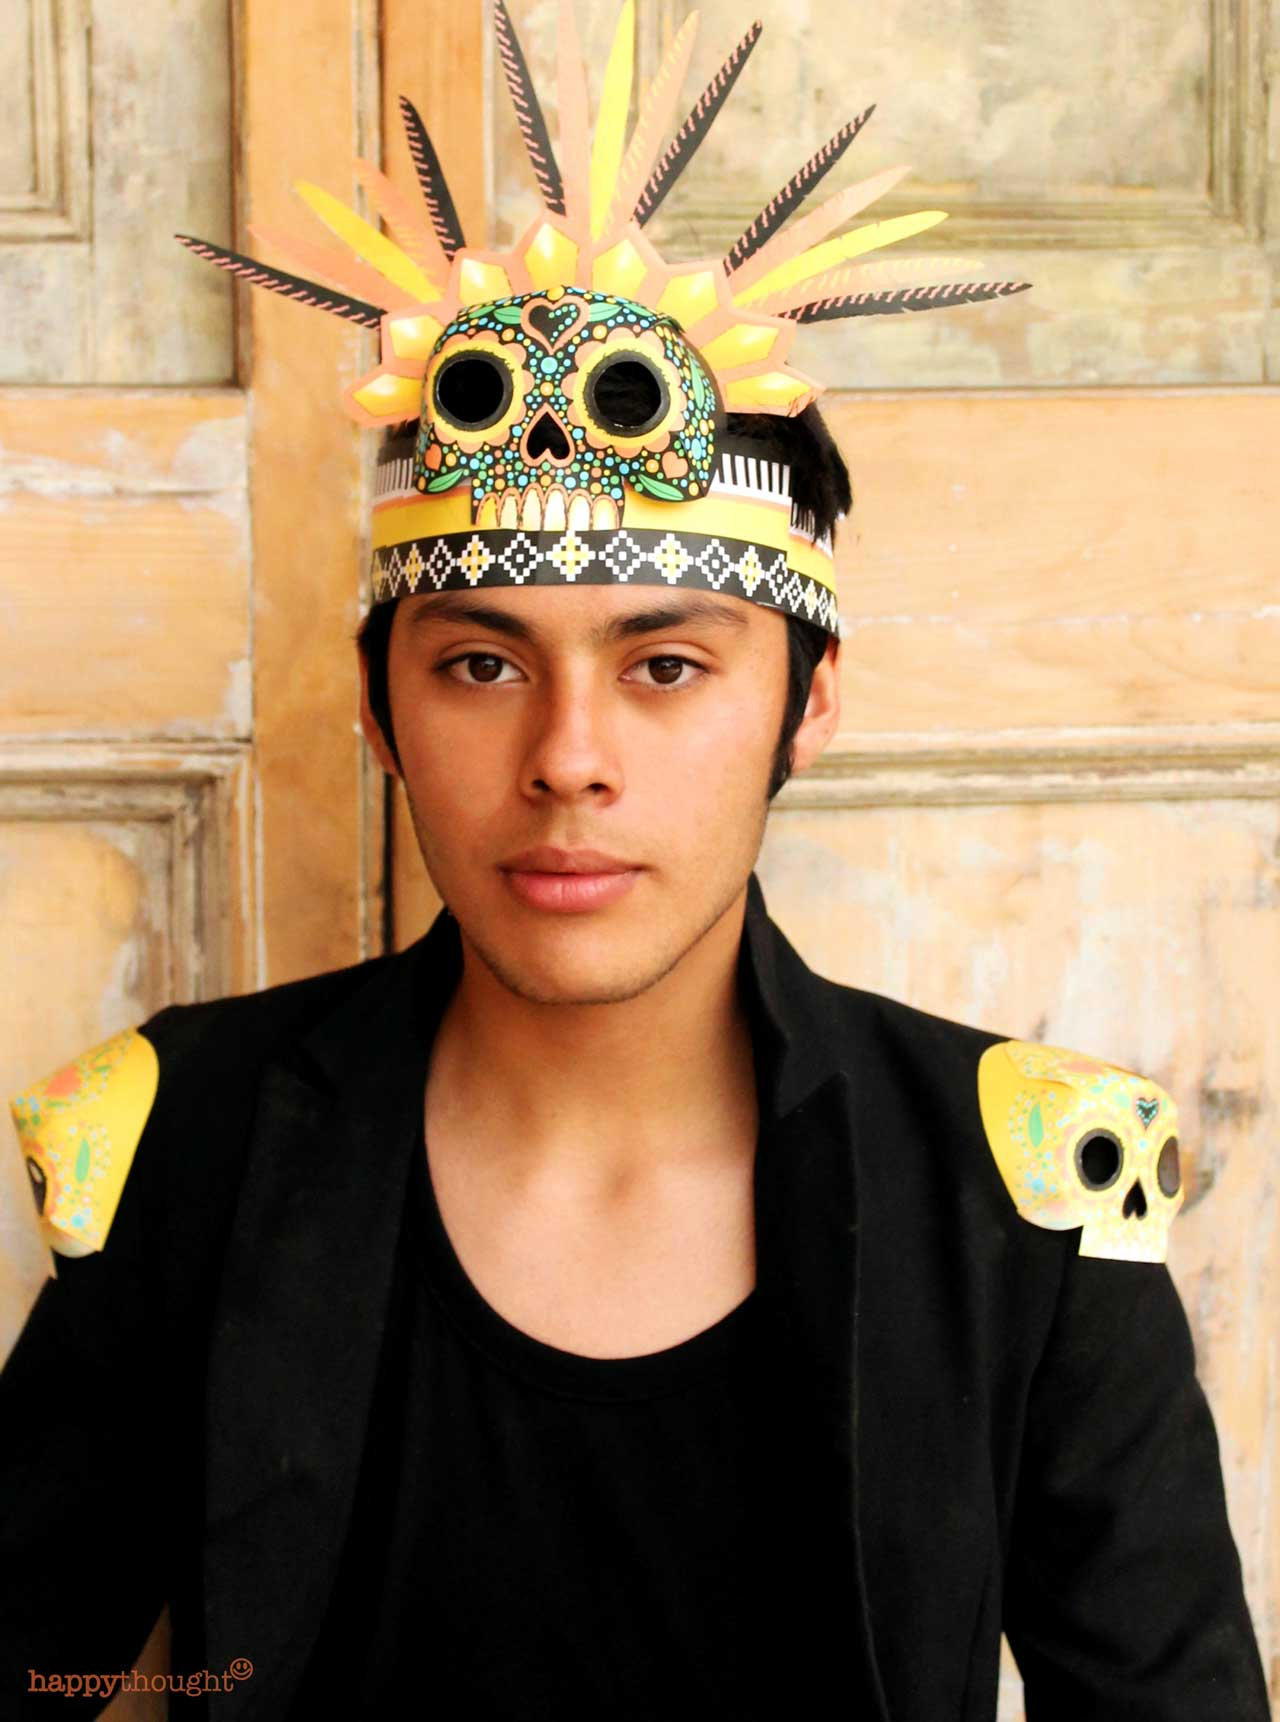 El Dia de los Muertos headdress design Chimalli Day of the Dead